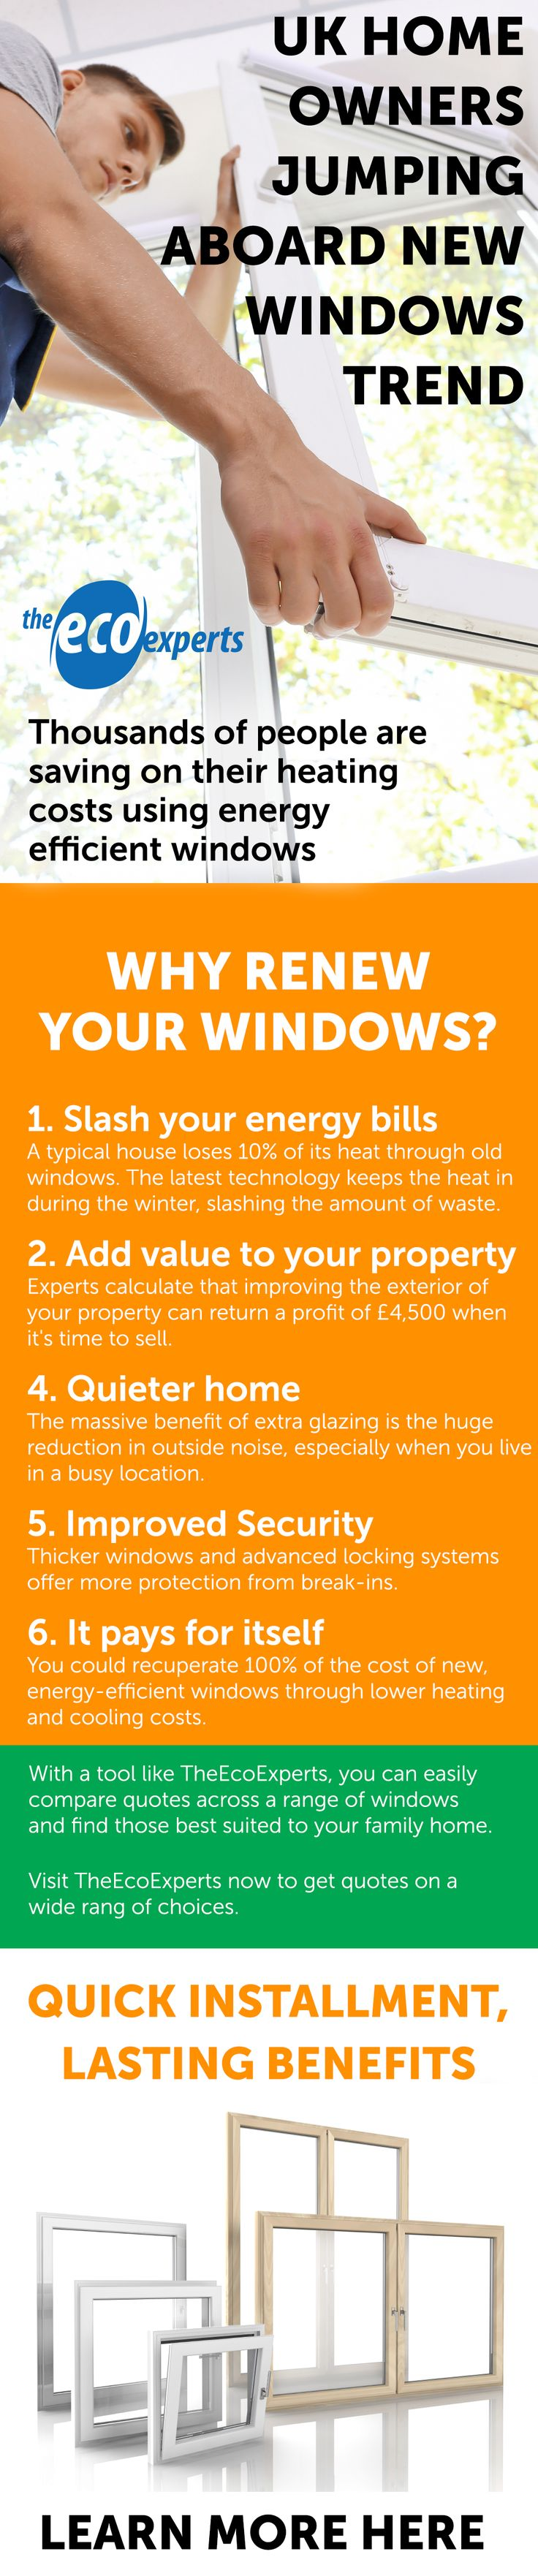 UK Home Owners Jumping Aboard New Windows Trend. Every day, homeowners are left paying unjust energy bills simply to heat their own homes. Even worse, so much of this energy is wasted; 18% of heat loss comes from windows, and just switching to double-glazed windows could save people thousands of pounds on energy bills in the long-term. Find out more here.